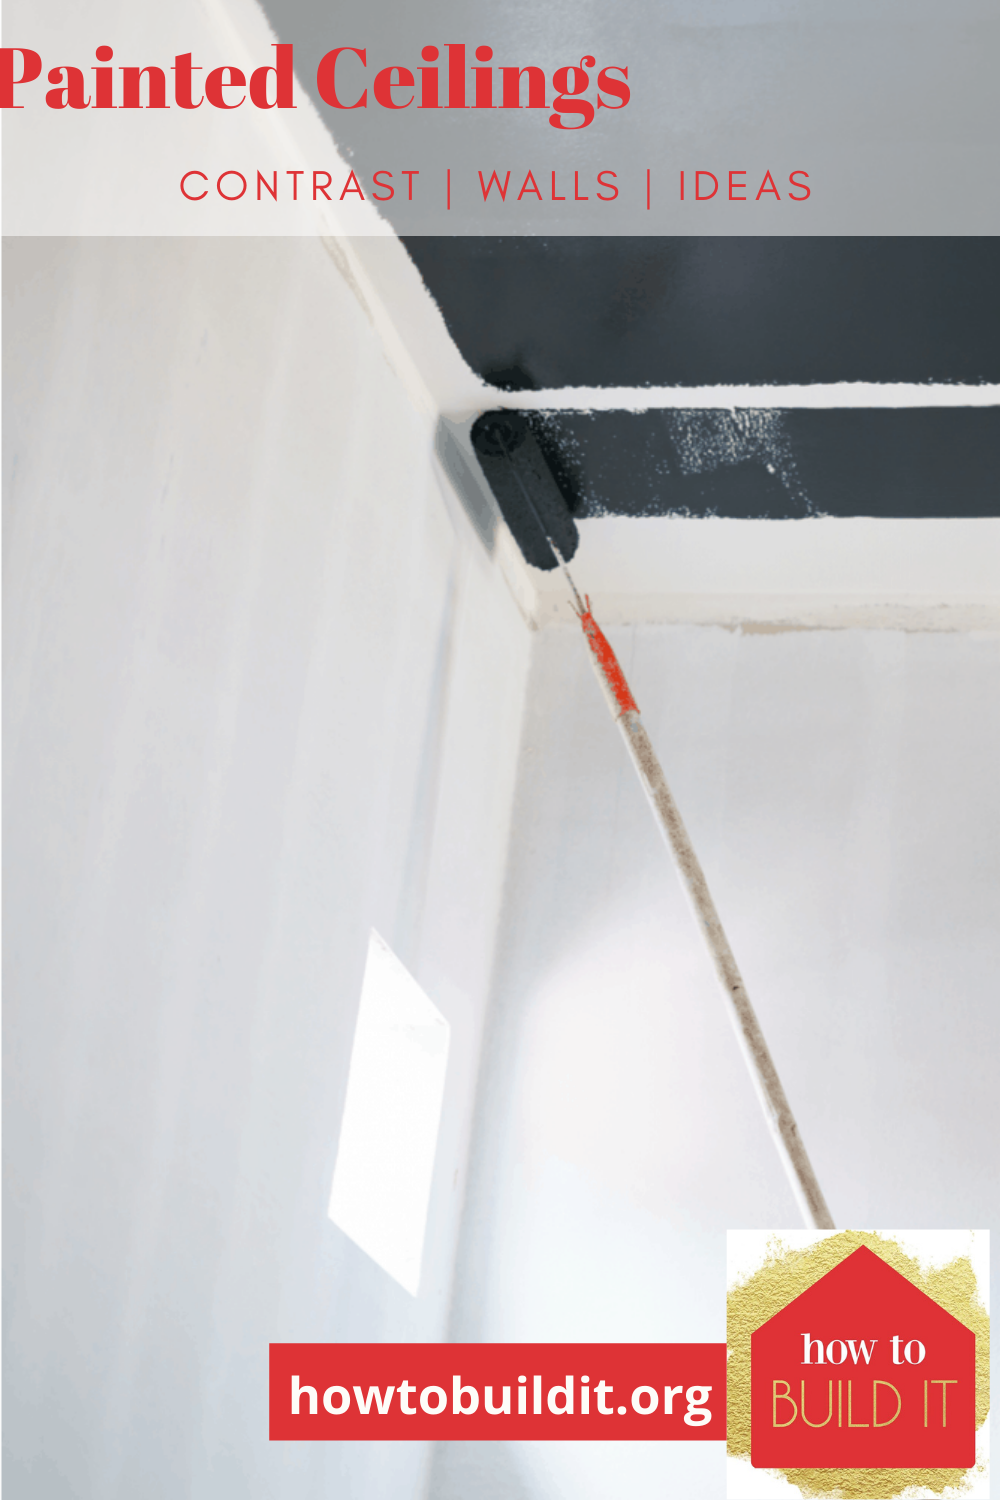 A hot trend in home decor this Summer, more and more homeowners are electing to paint their ceilings dark to create a little drama at home. What do you think of this look? #paintedceilings #home #howtobuilditblog